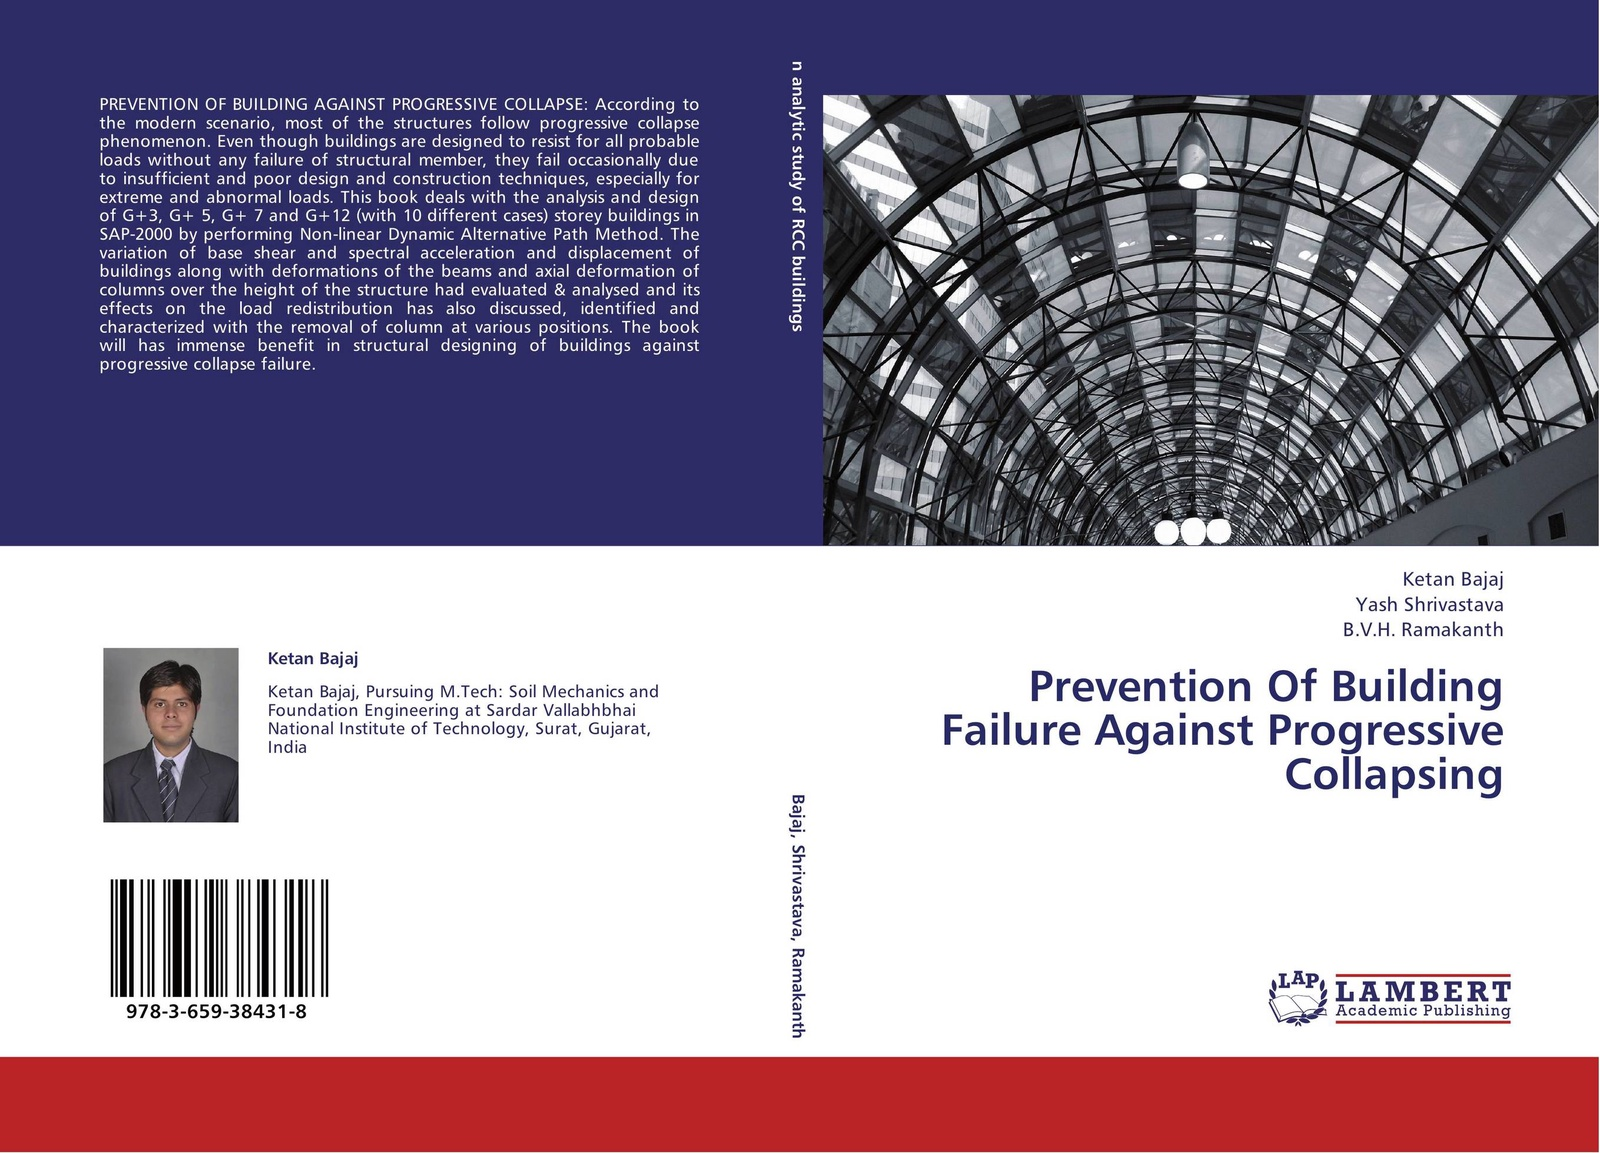 Ketan Bajaj,Yash Shrivastava and B.V.H. Ramakanth Prevention Of Building Failure Against Progressive Collapsing paul smith structural design of buildings